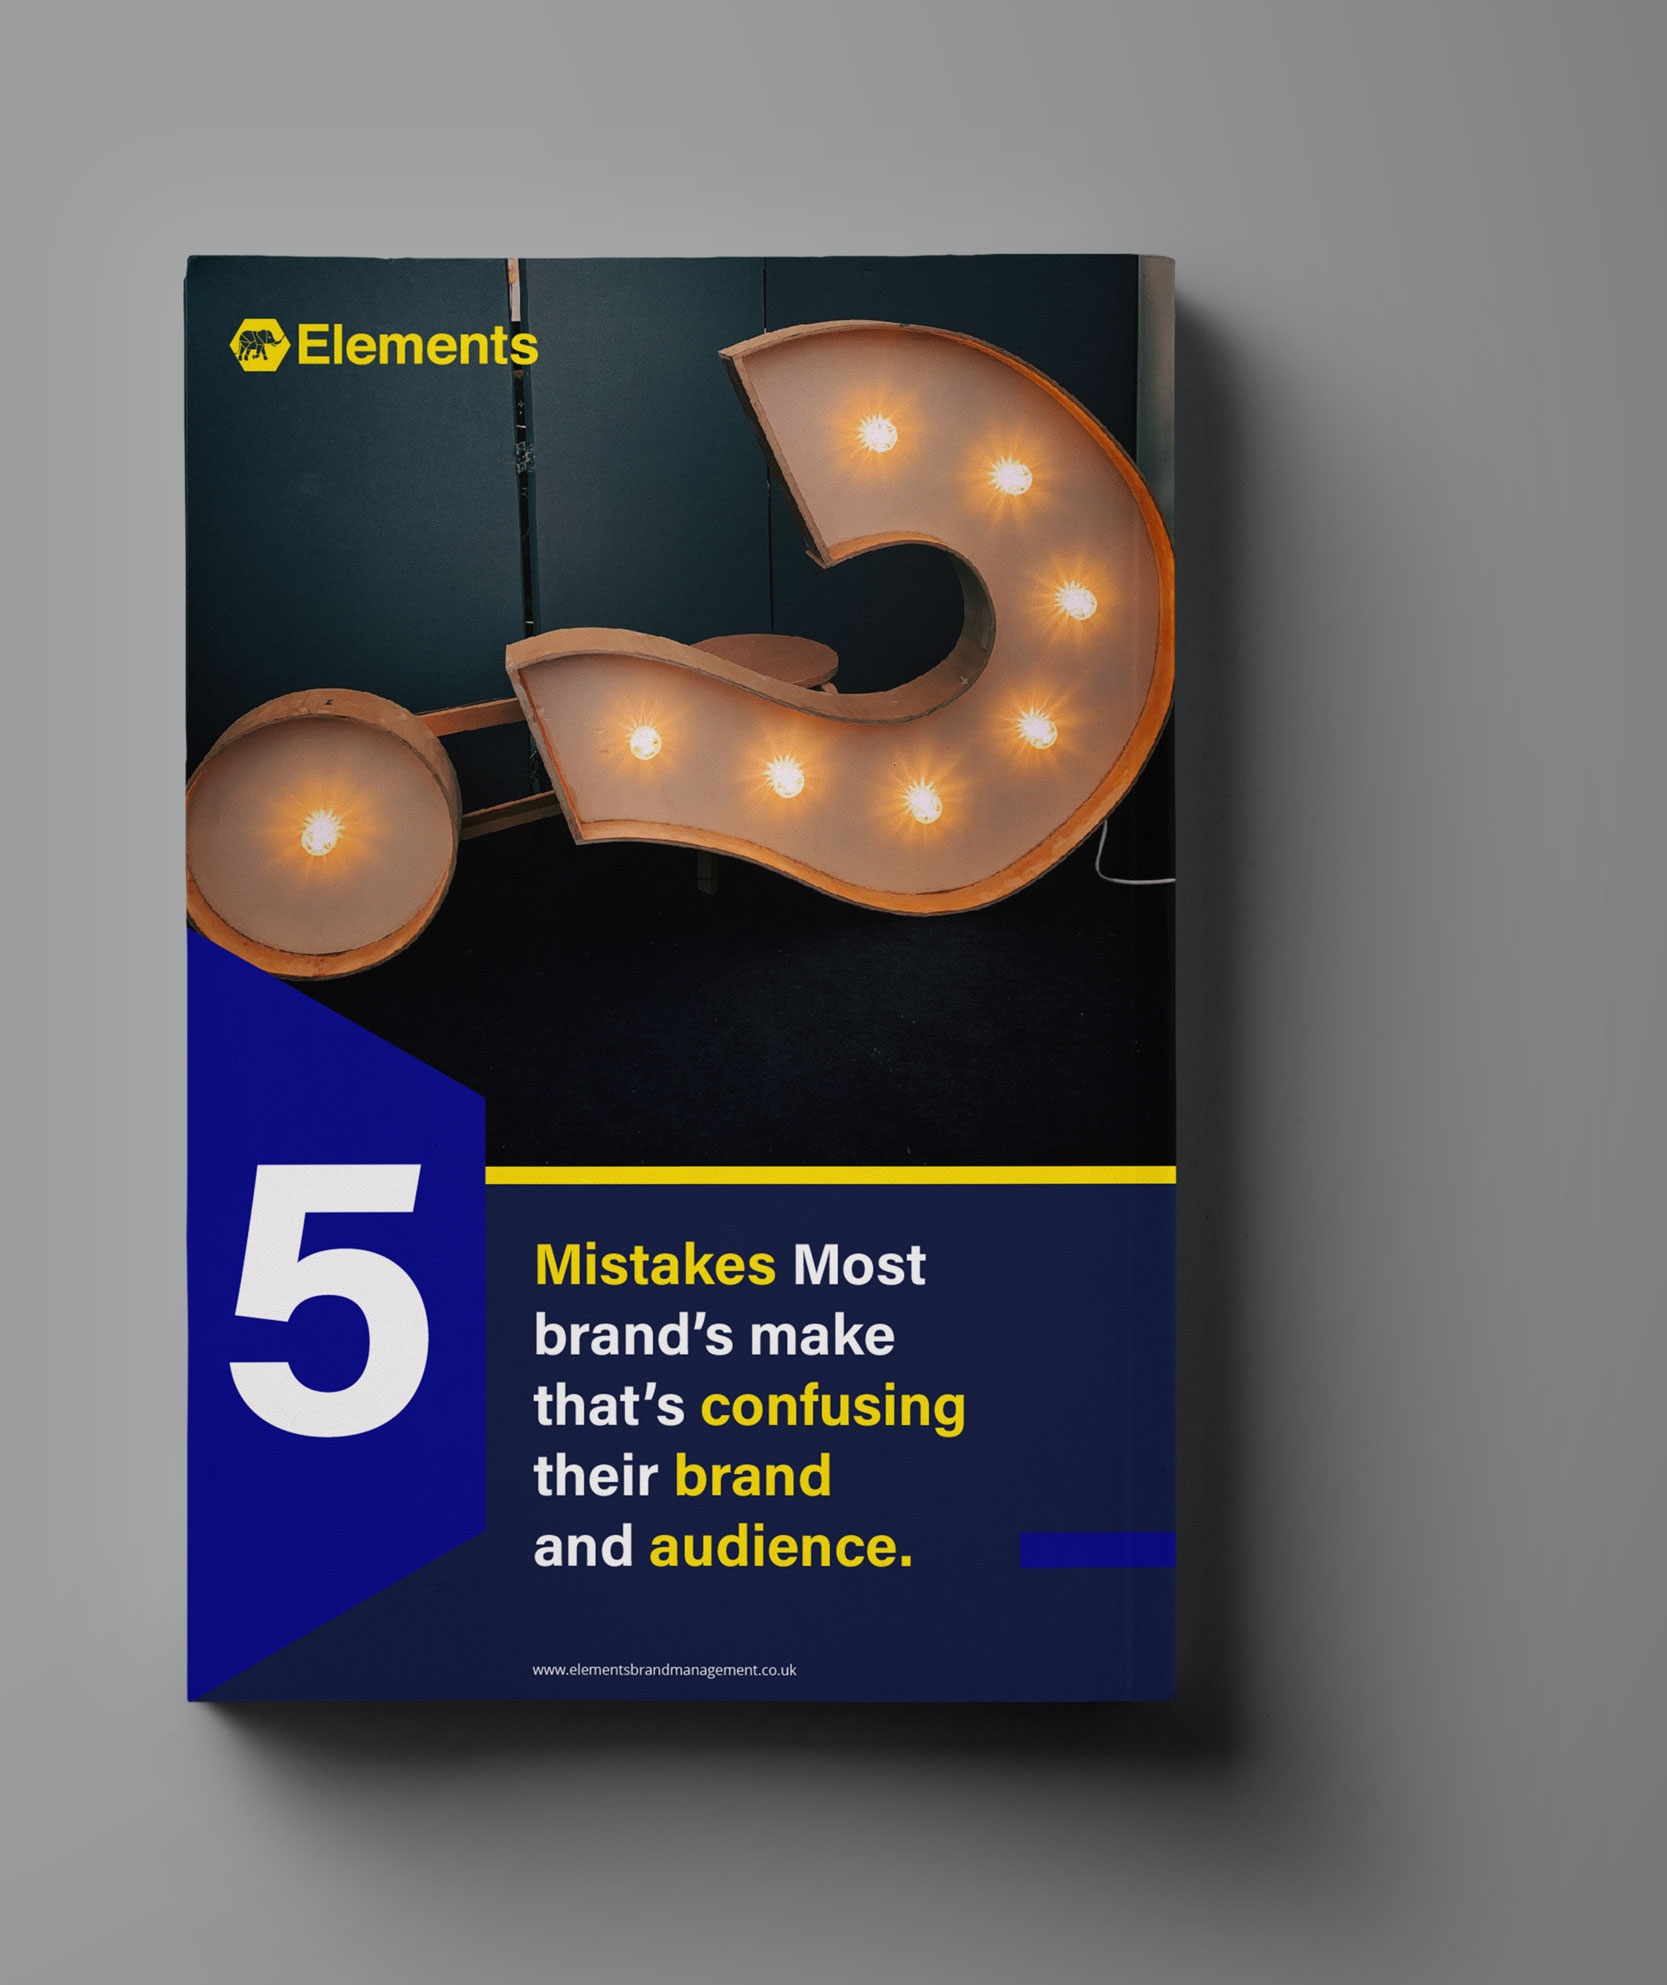 5 Mistakes Most brand's make that's confusing their brand and audience